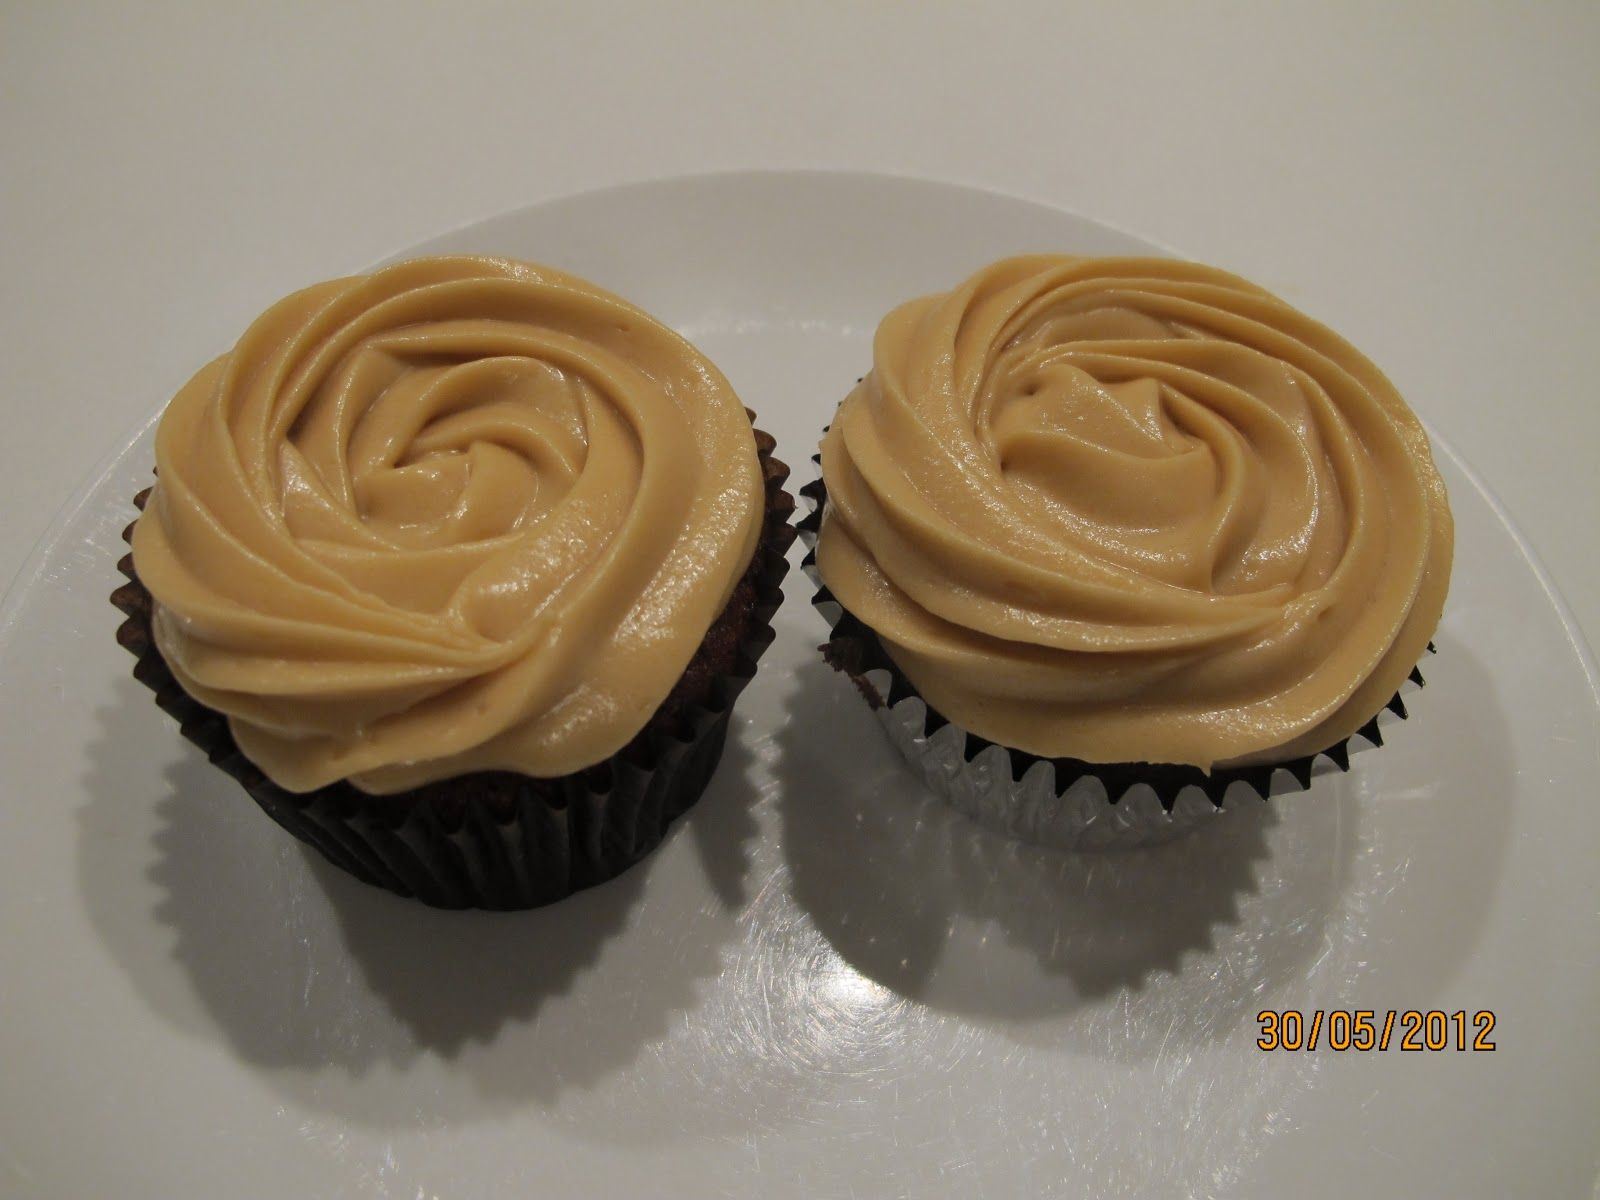 ... family and food: Sticky Date Cupcakes with Toffee Cream Cheese Icing